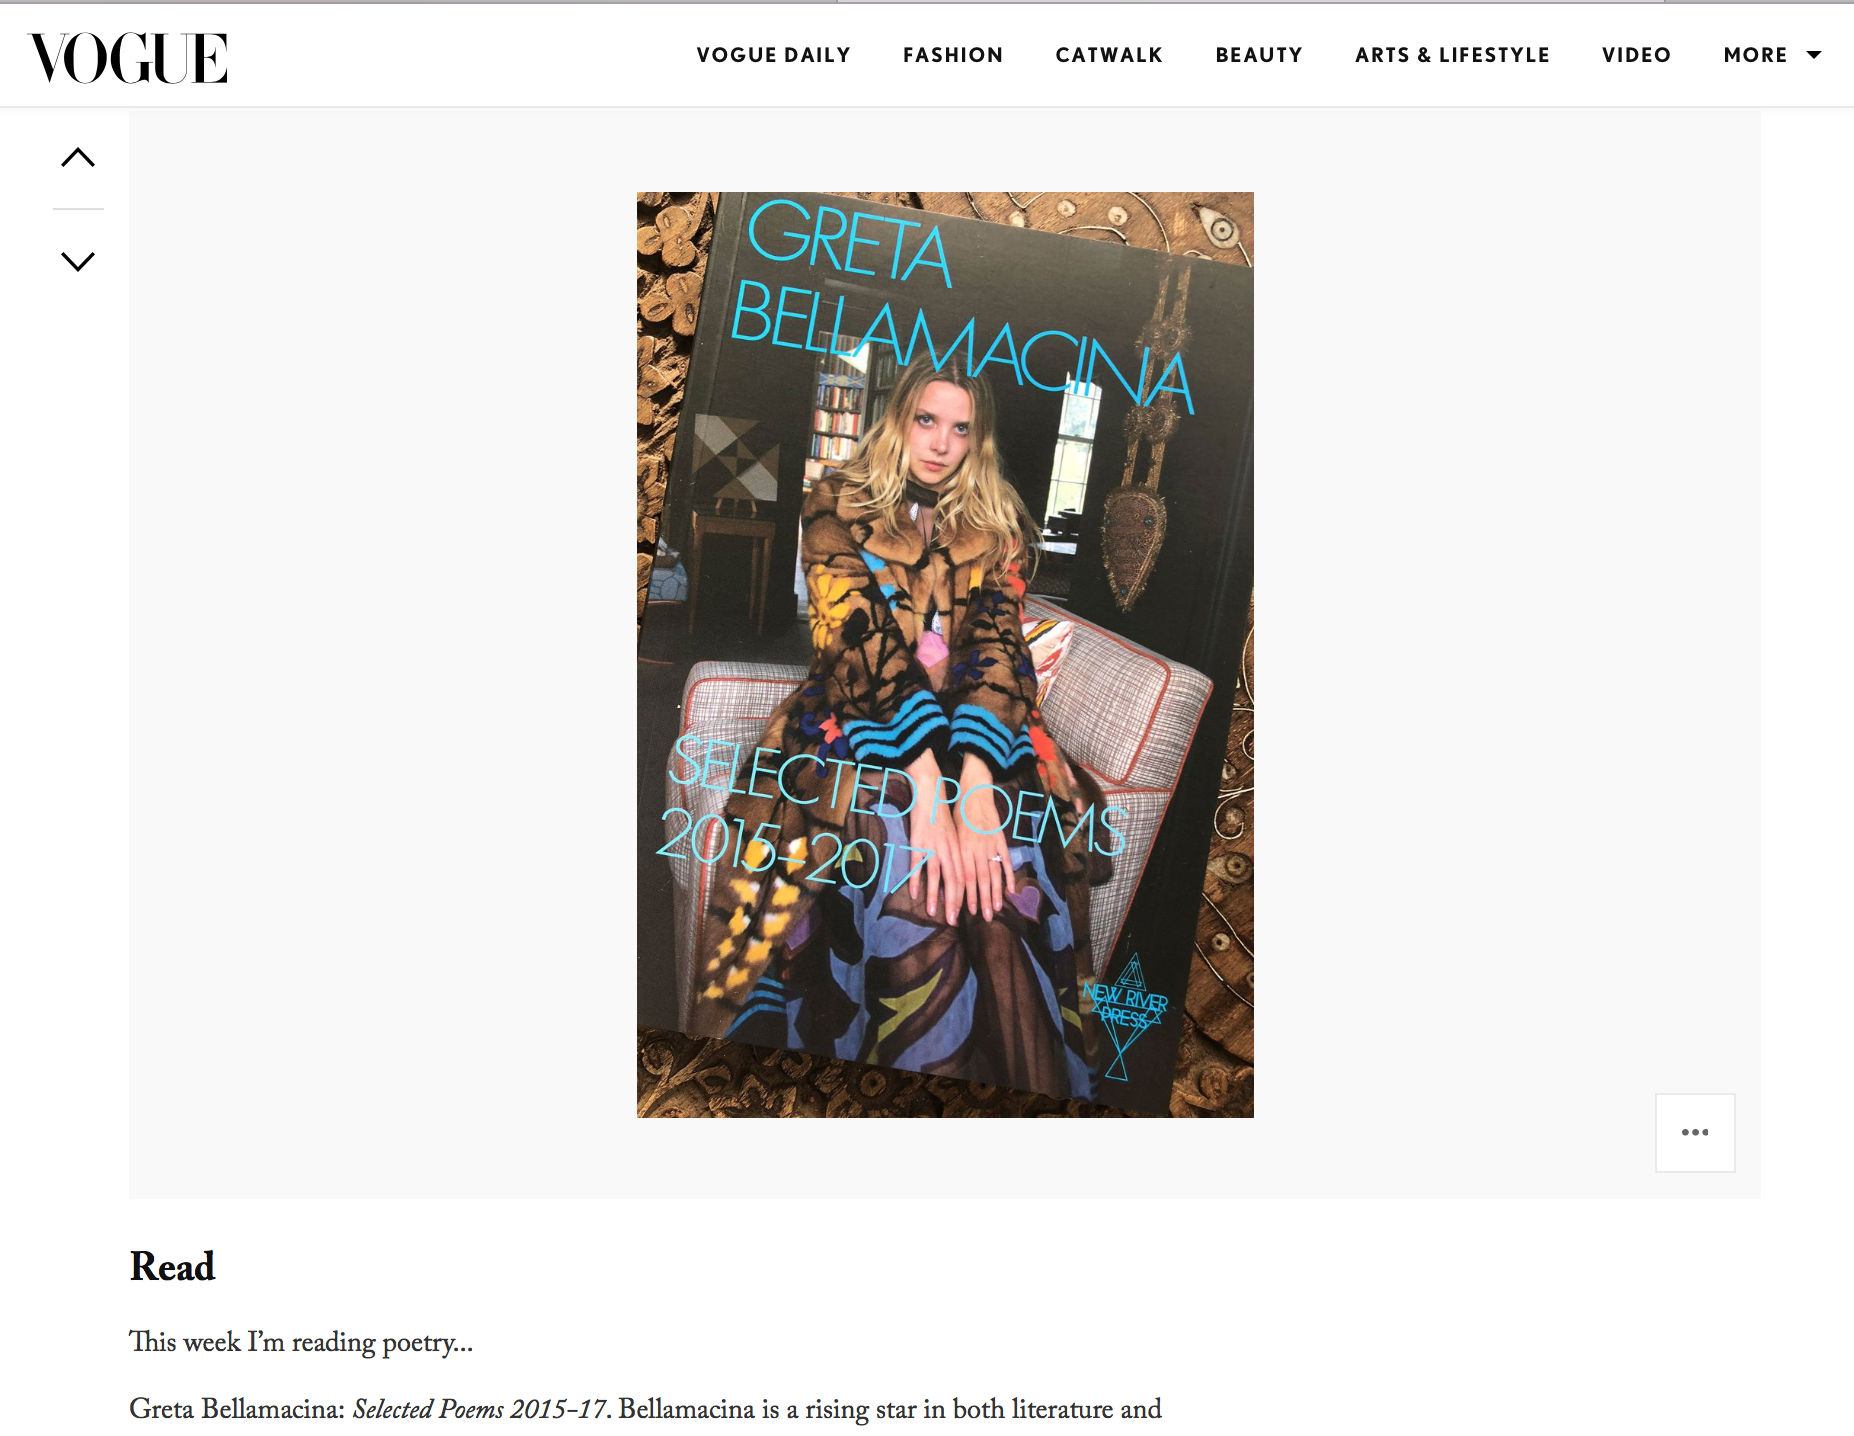 Read more on Laura Bailey's column on Vogue.co.uk:http://www.vogue.co.uk/gallery/laura-loves-laura-baileys-weekly-edit-11